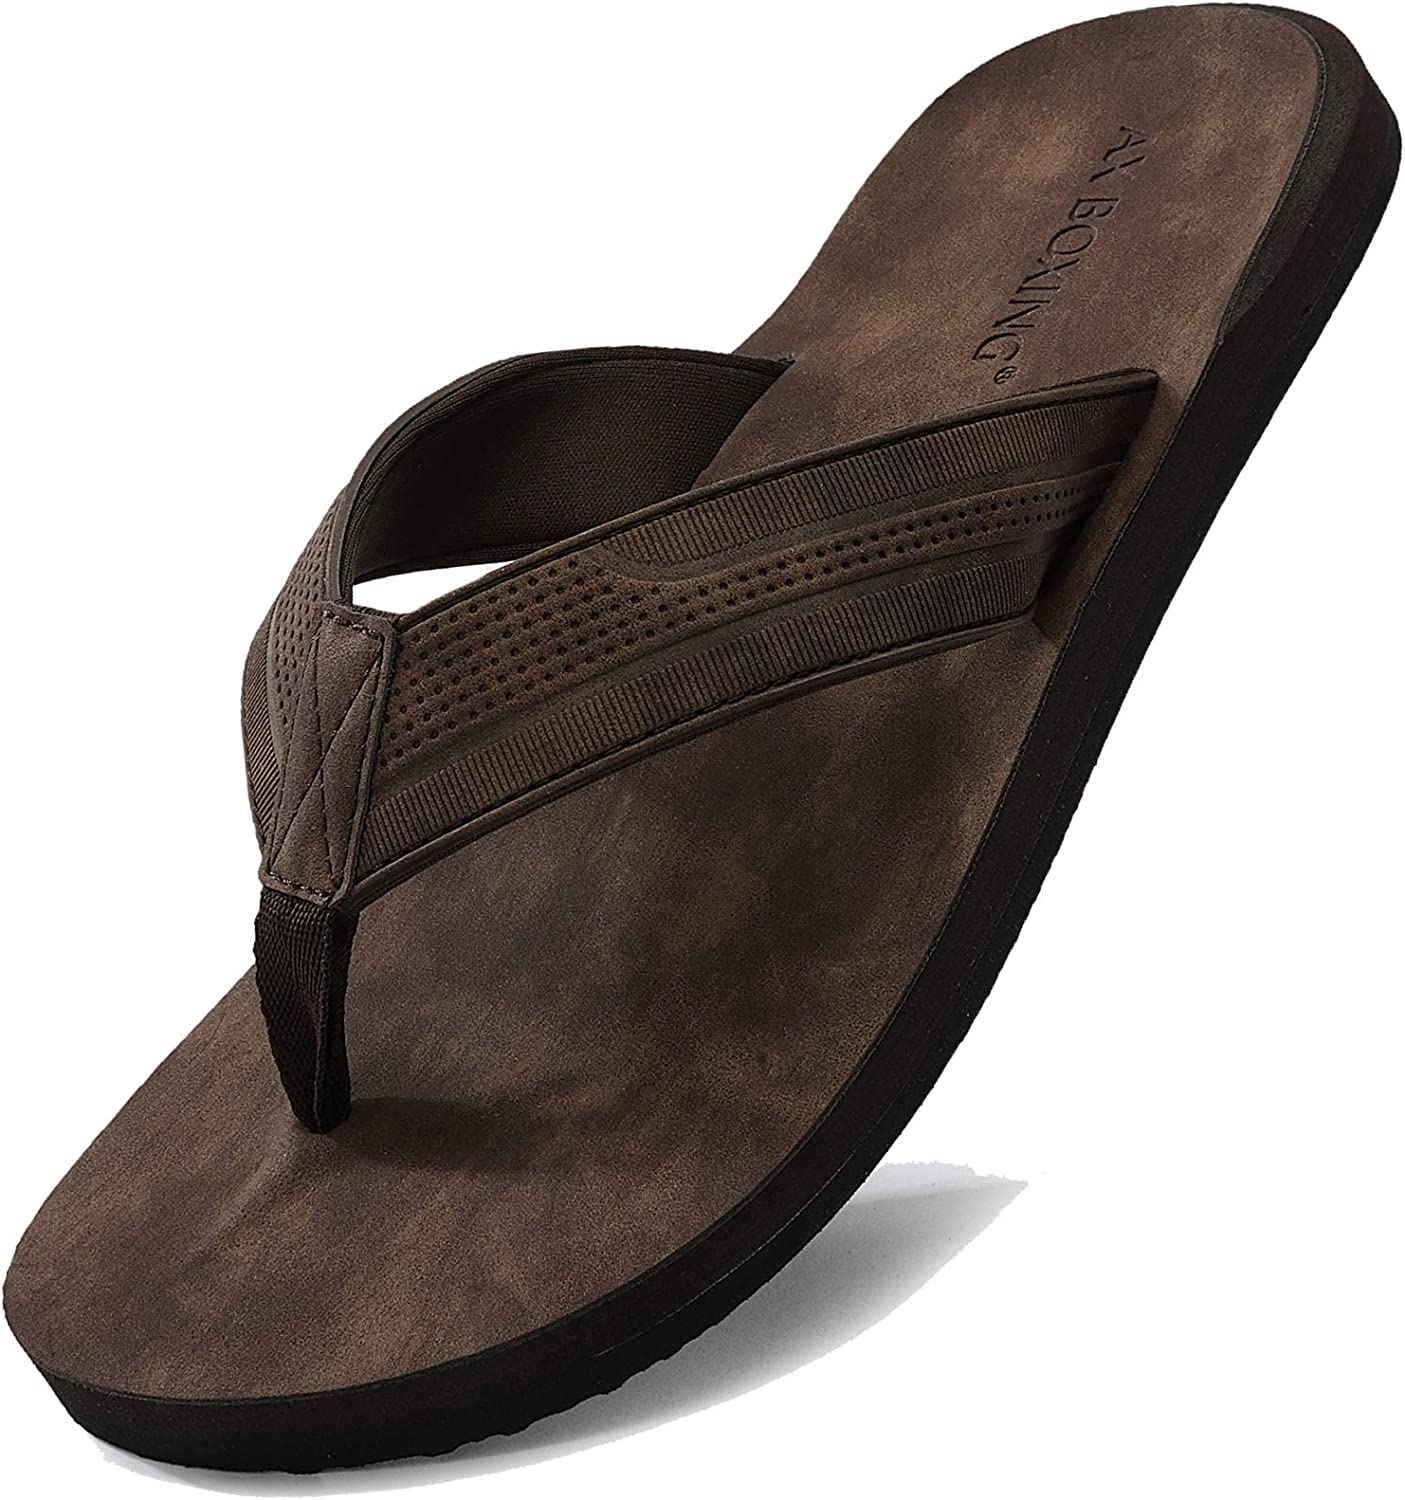 AX BOXING Flip Flops Mens Thong Sandals Leather Casual Comfort Flat Slides Slippers